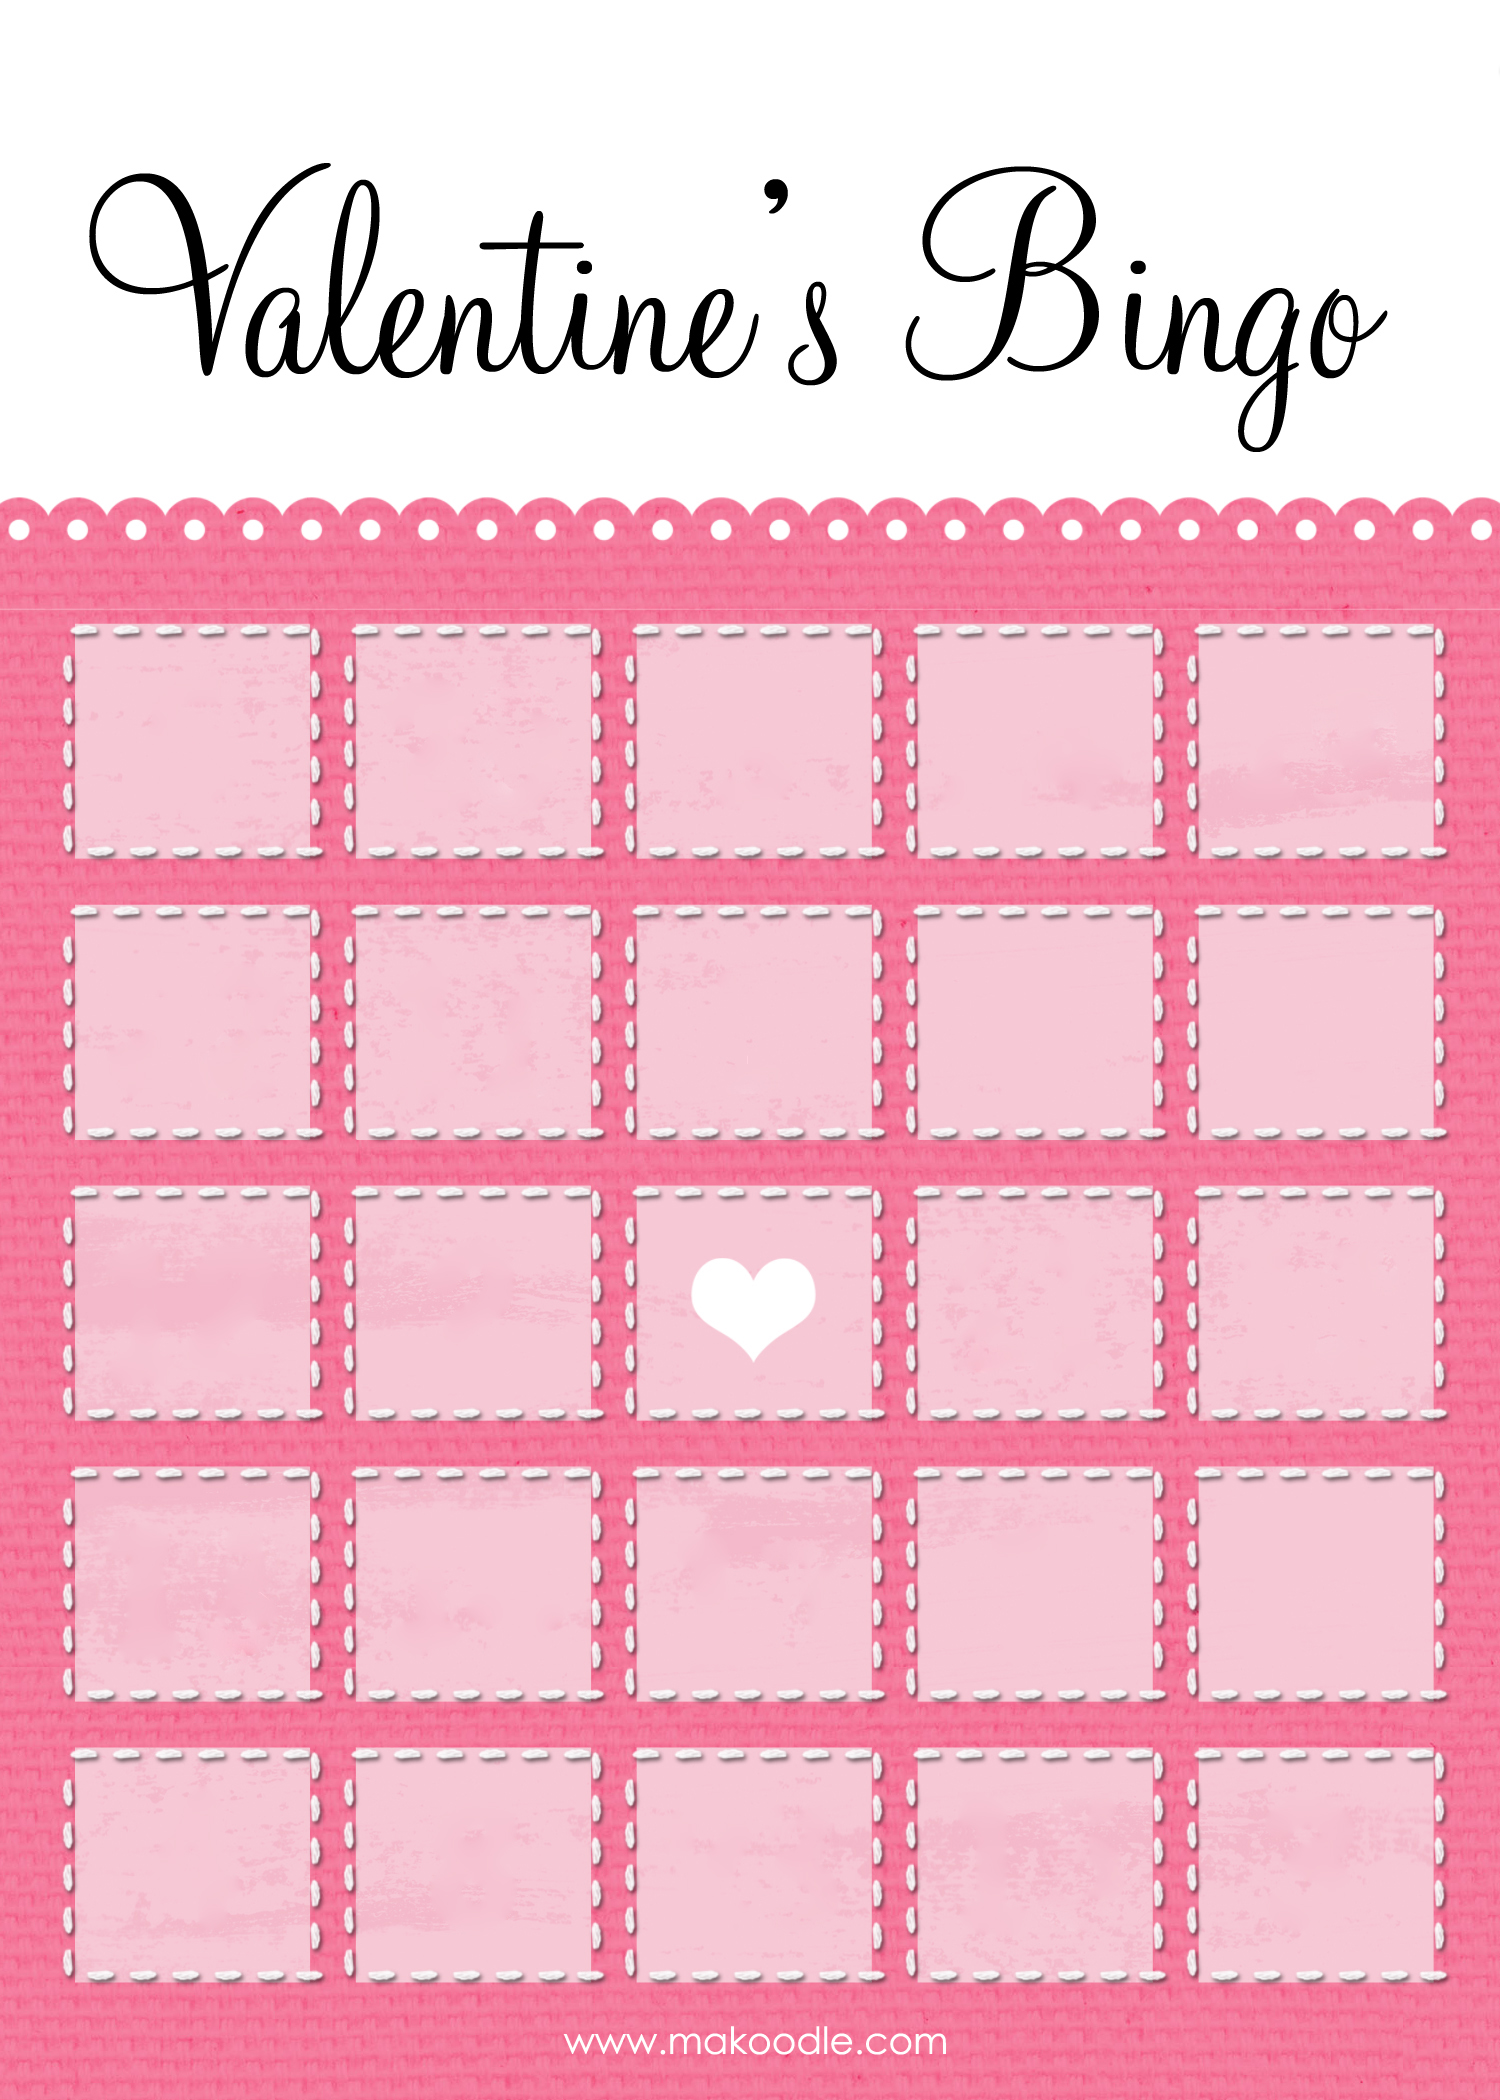 Valentine Printable Images Gallery Category Page 16